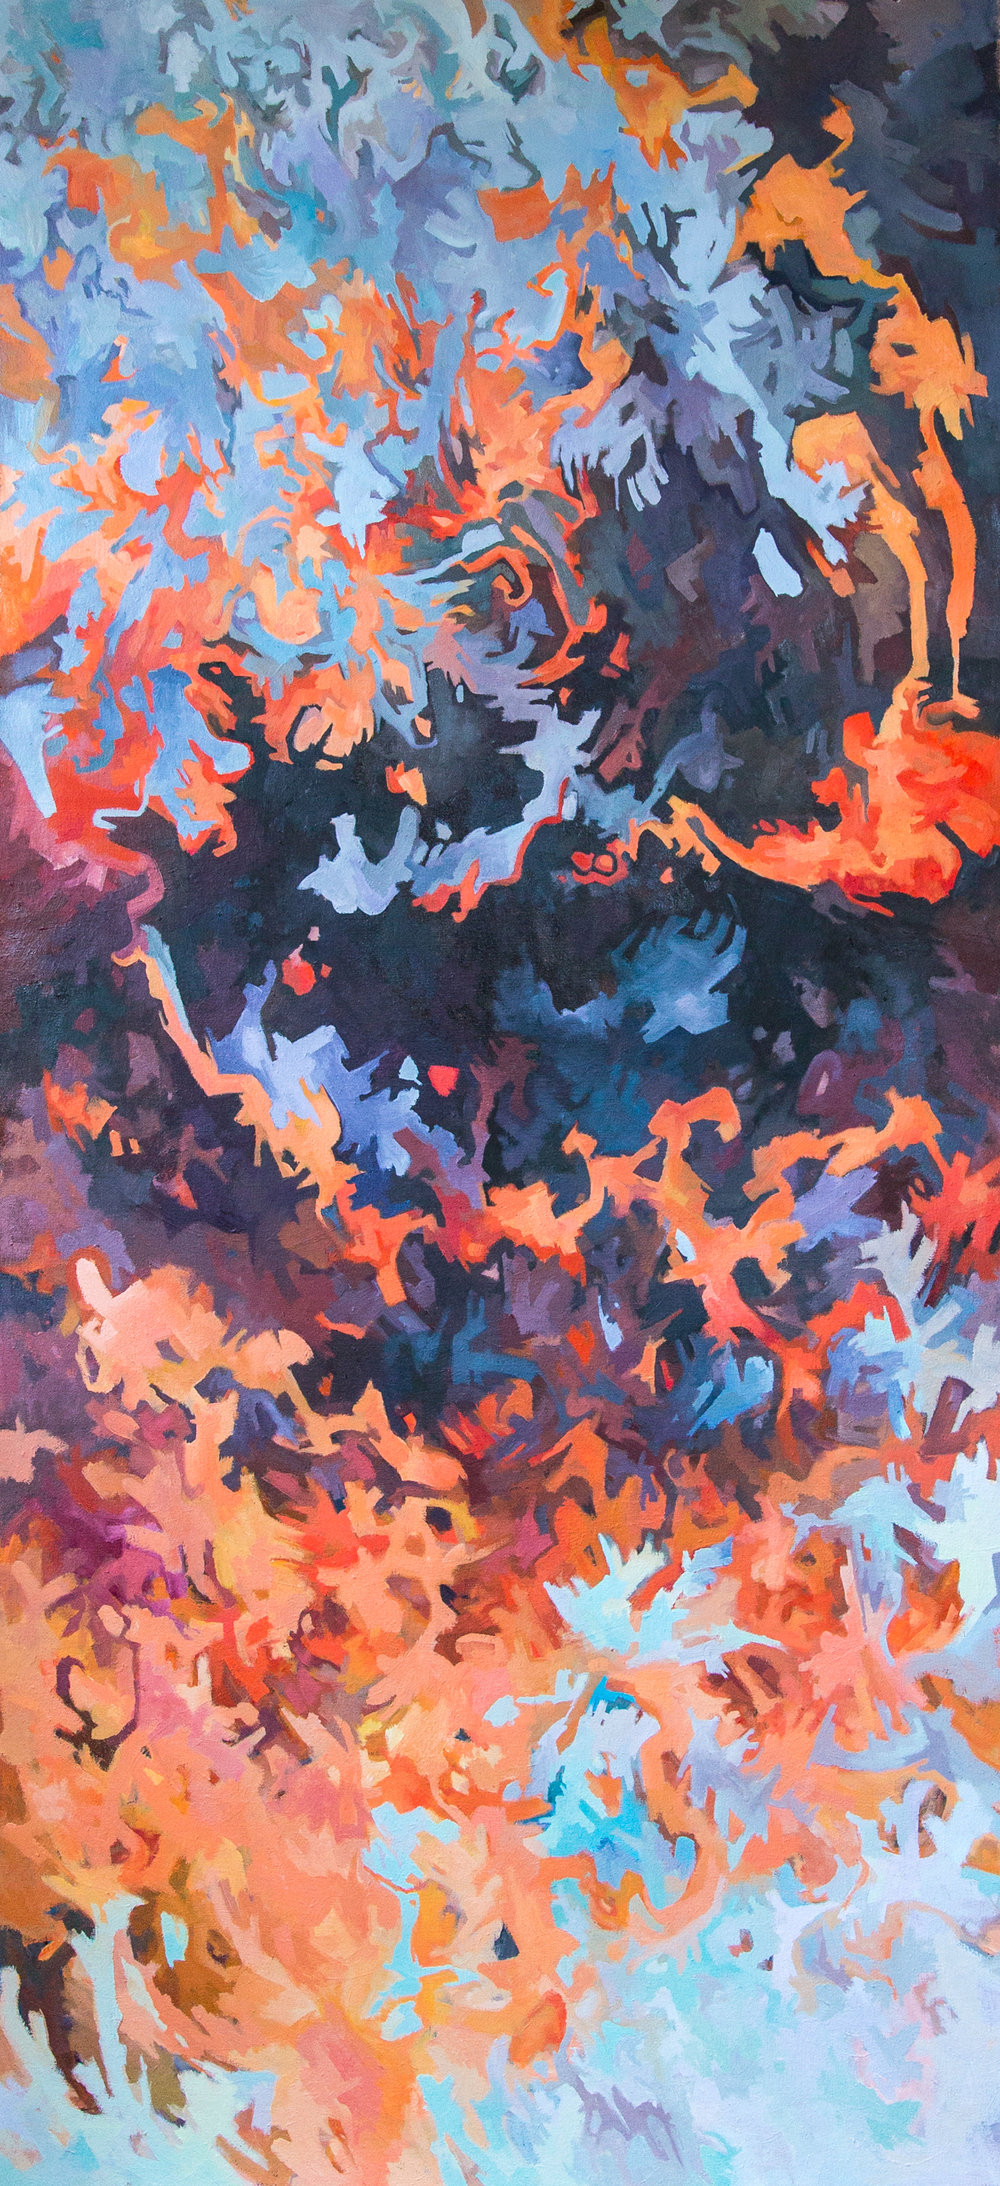 The Ultraviolet Catastrophe, 2018, oil on canvas, 60 x 28 inches